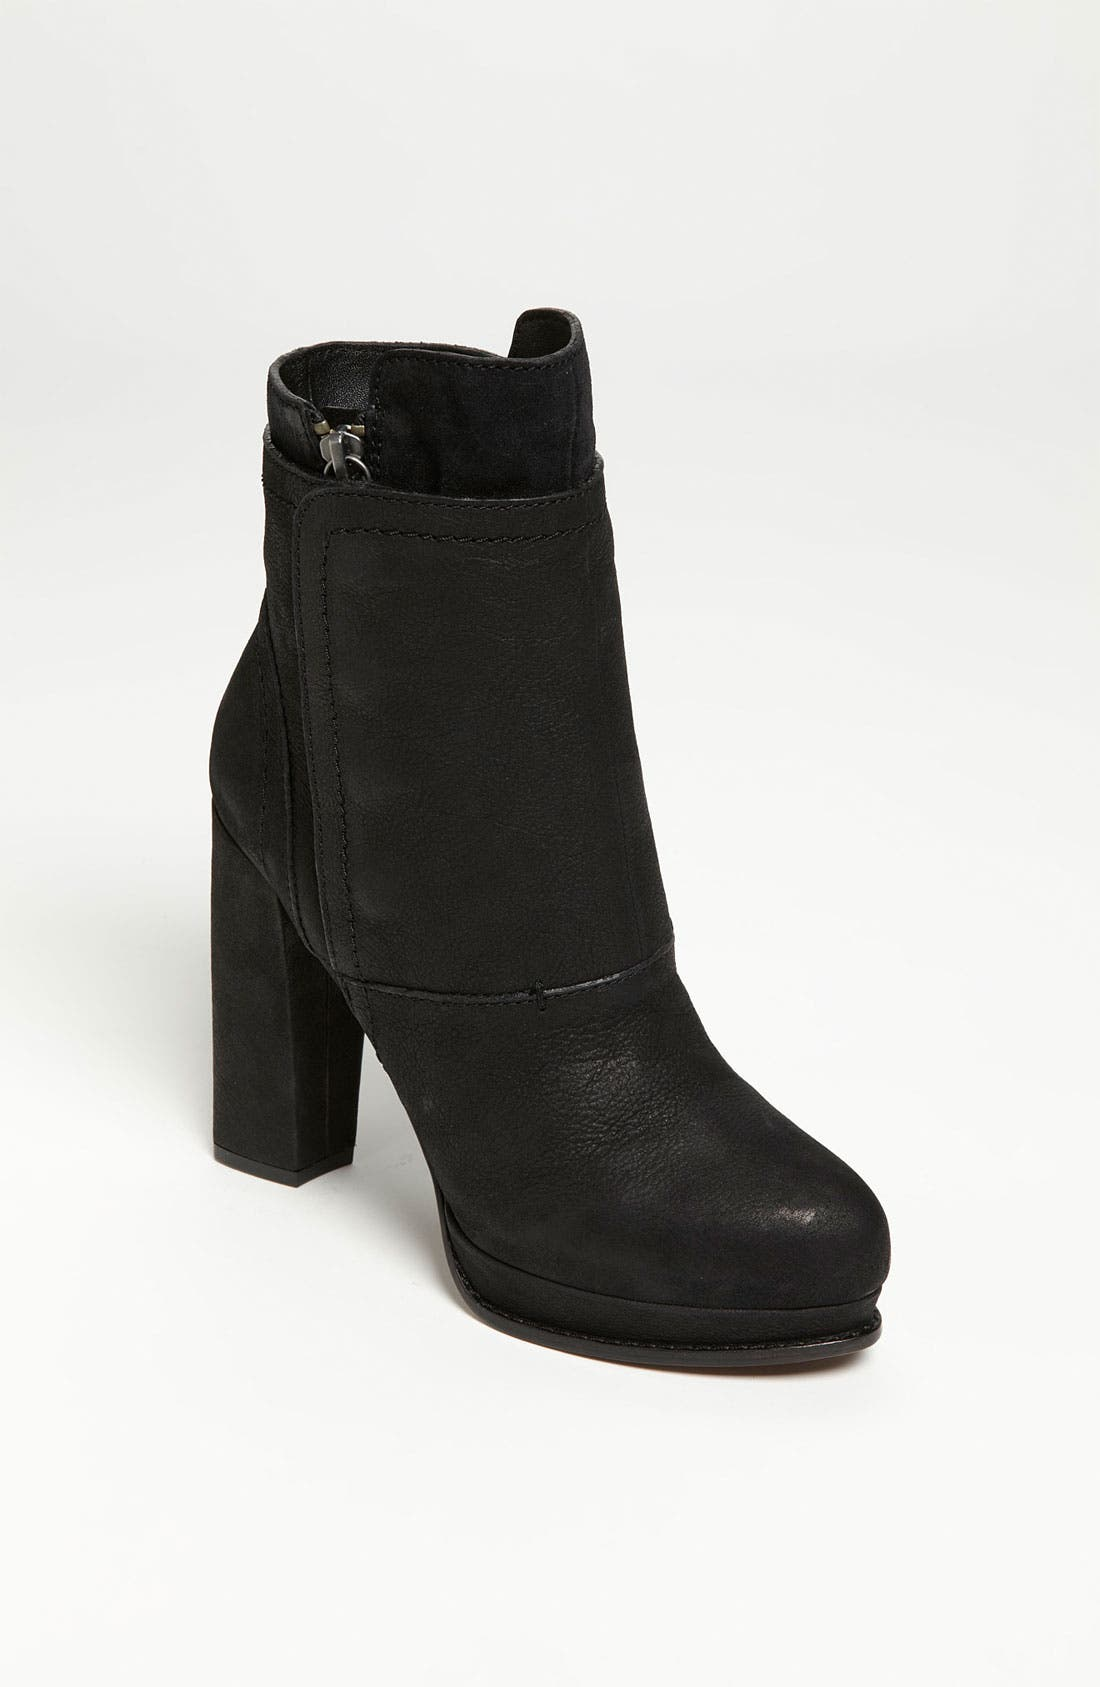 Alternate Image 1 Selected - Vera Wang Footwear 'Marilyn' Boot